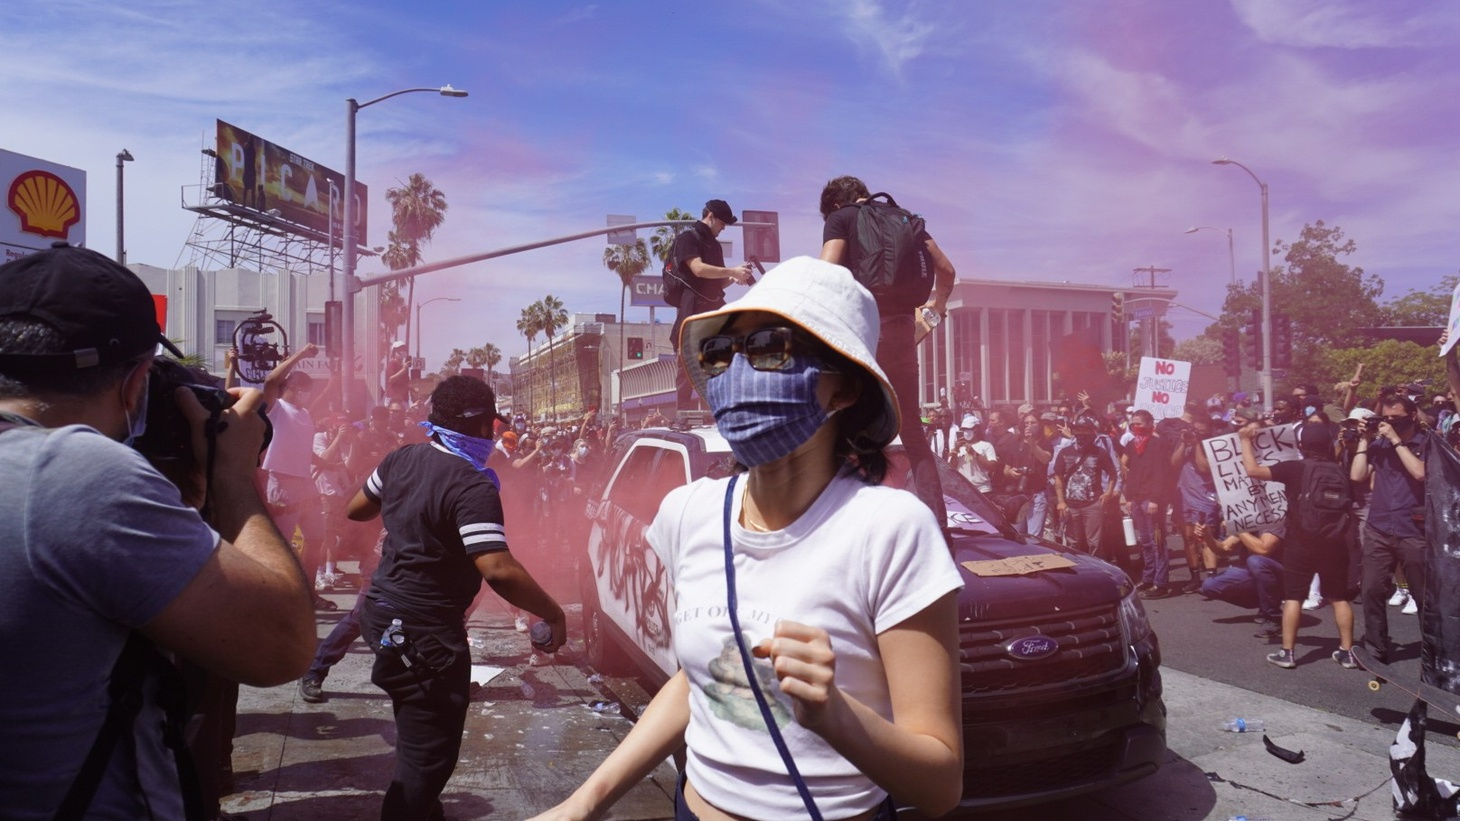 A woman gets out of the way as demonstrators smash a police car in the Fairfax district of Los Angeles.